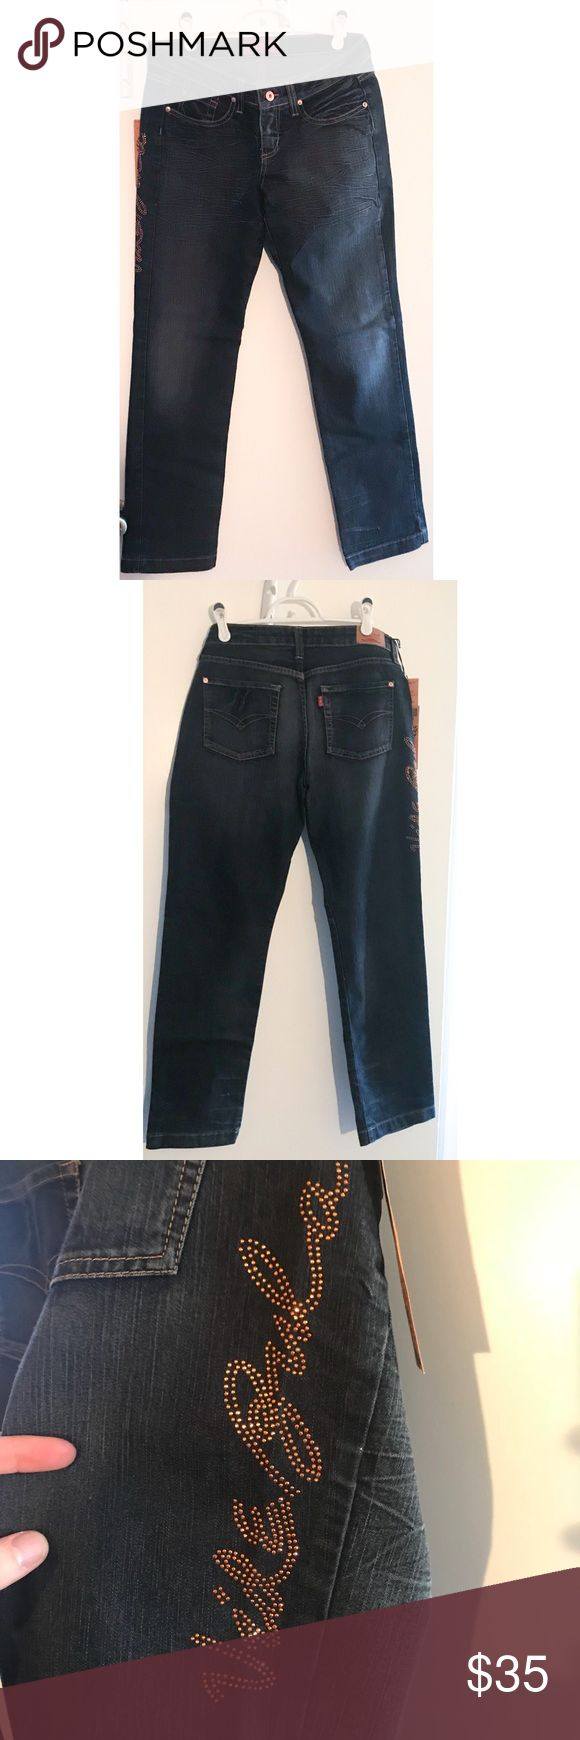 NWT Vide Bula Jeans This Vide Bula Jeans are fabulous! Straight leg fit, dark charcoal color, fading style, copper metallic vide bula Design on side, size 32, runs small (high end Brazilian brand), brand new with tags. Bundle deal: buy 2 or more items from my closet & save 10% vide bula Jeans Straight Leg